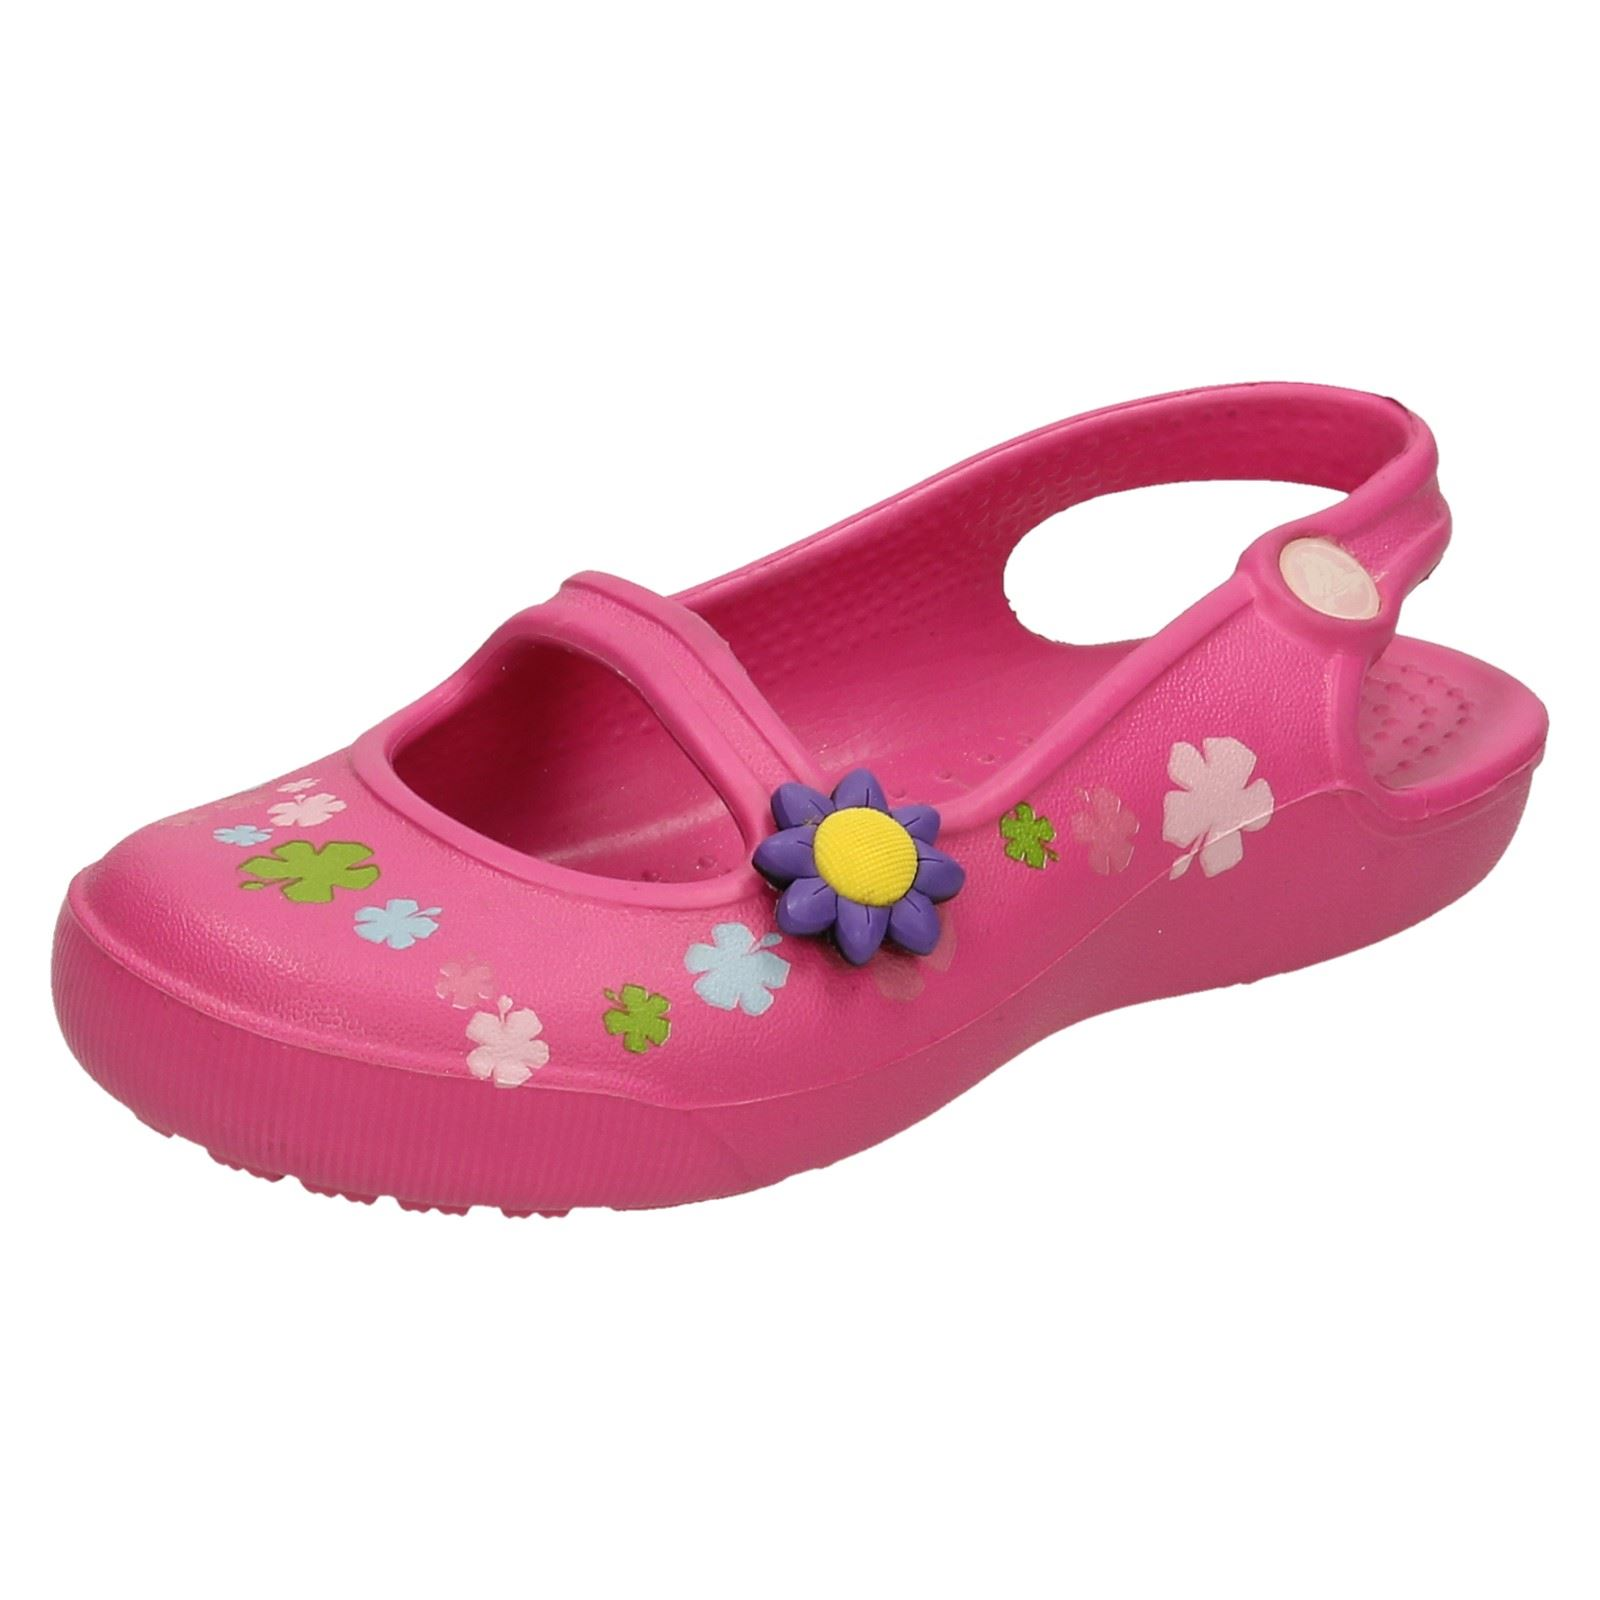 990297bc0 Girls Crocs Gabby Flowers Slip On Sandals